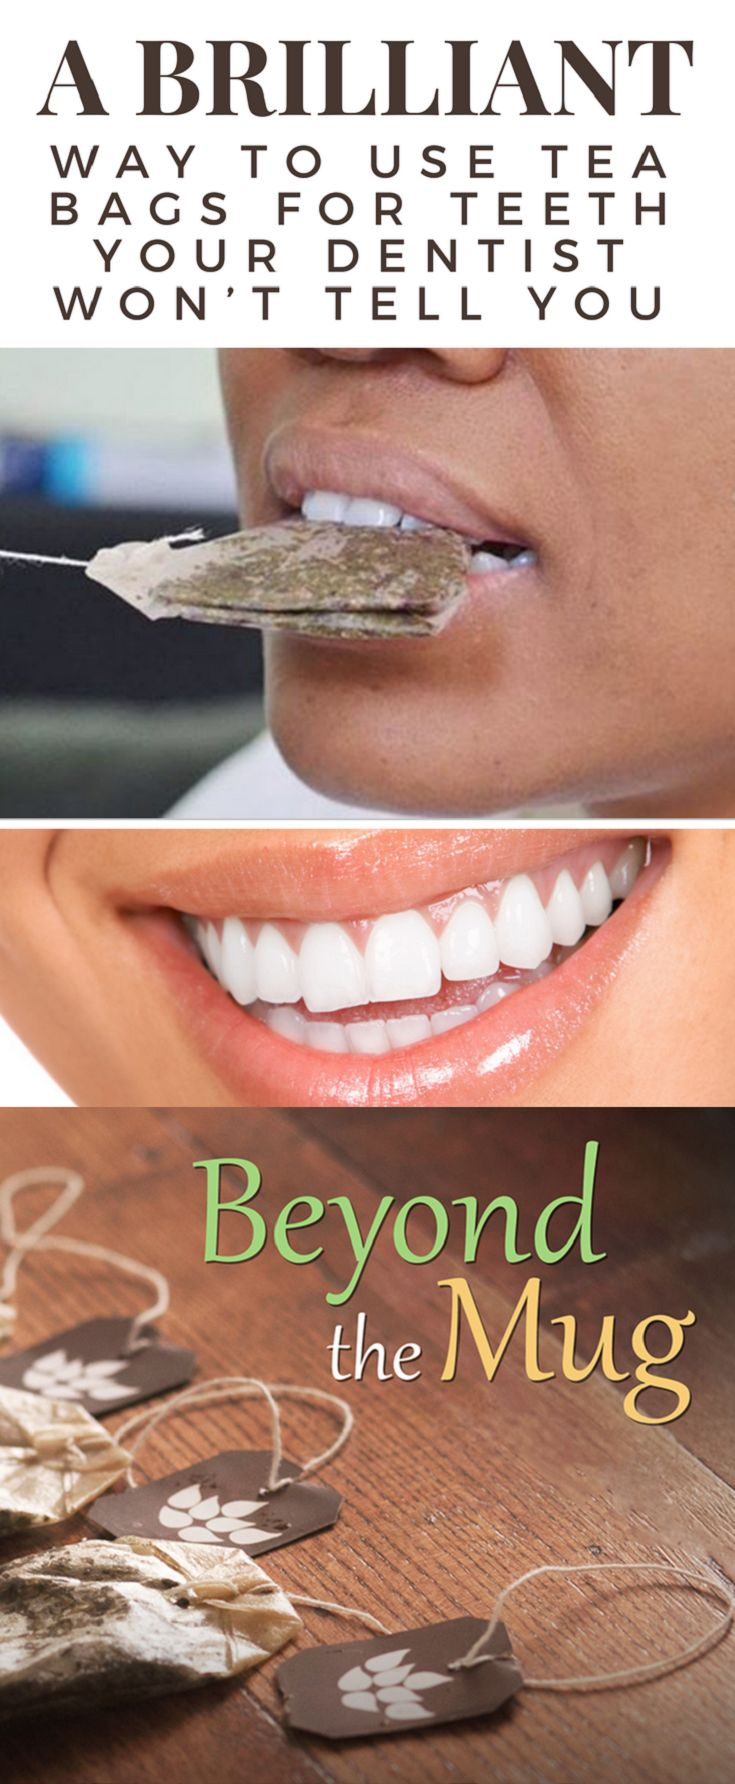 A Brilliant Way to Use Tea Bags for Teeth Your Dentist Wont Tell You